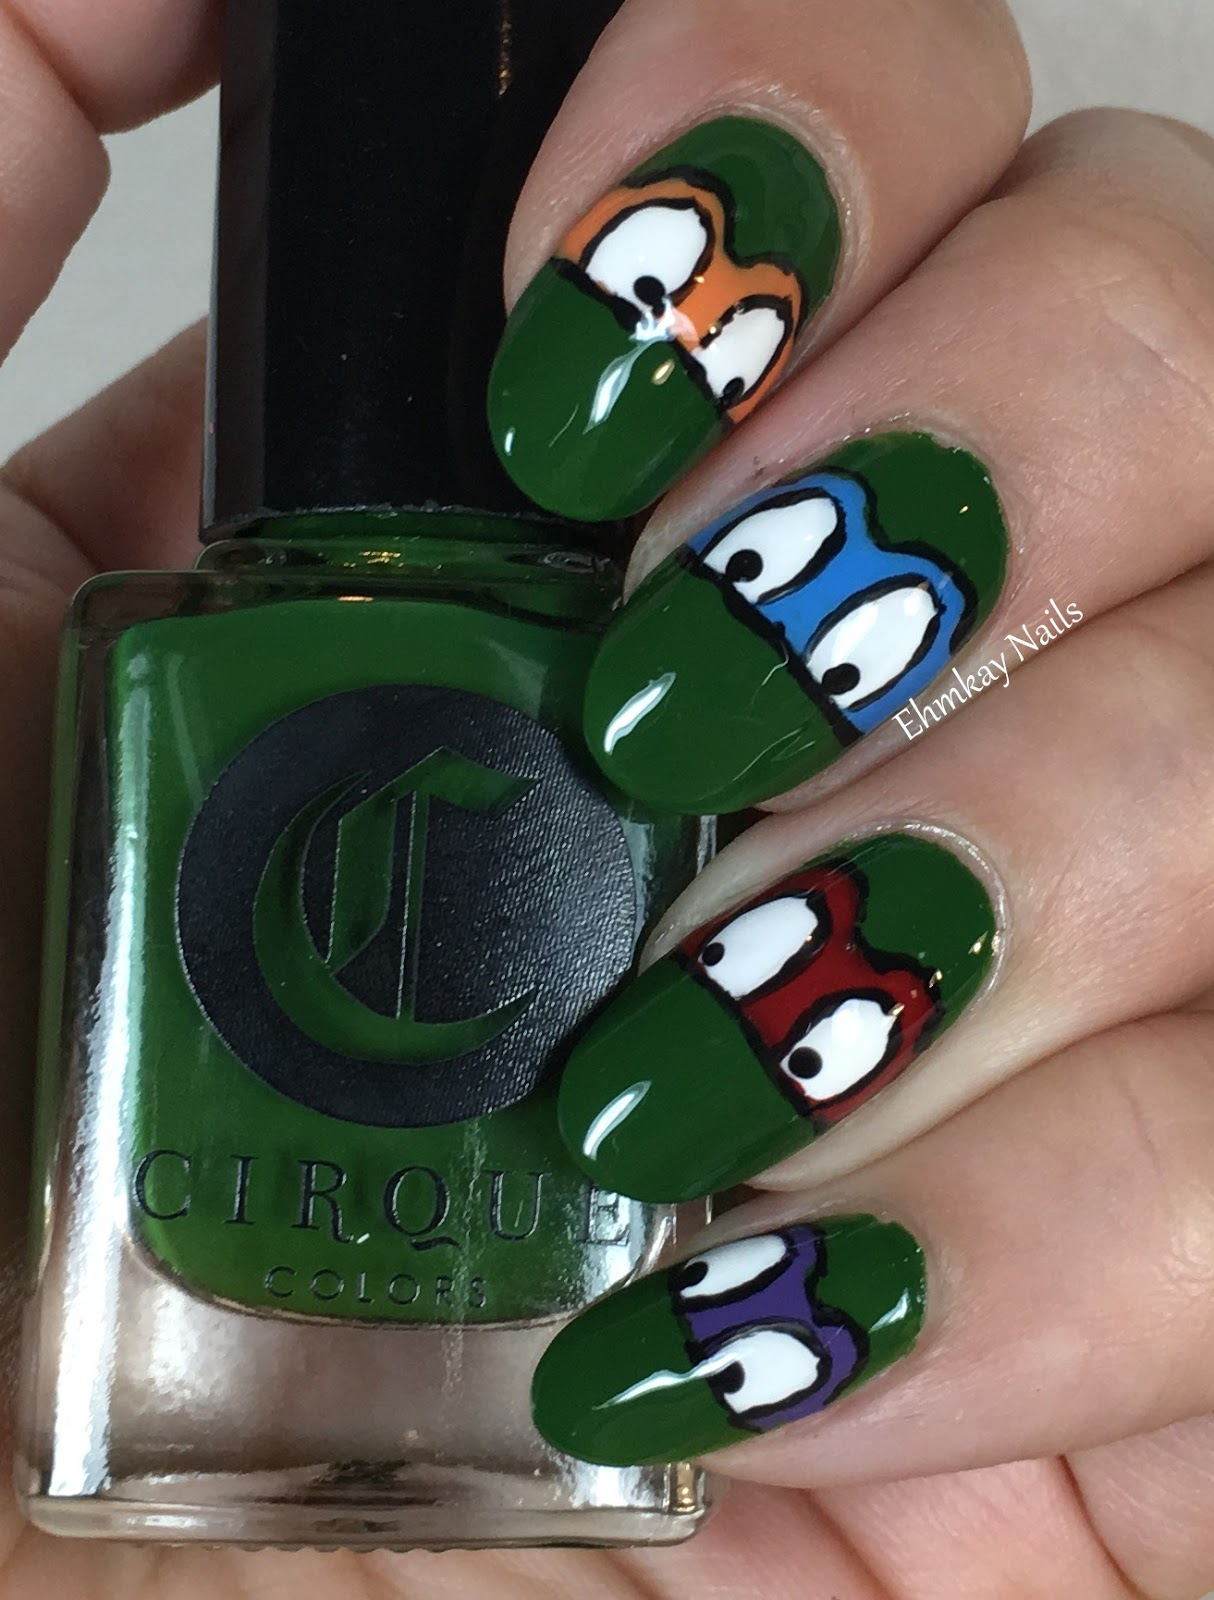 ehmkay nails: 80s Nail Art: Ninja Turtles Nail Art